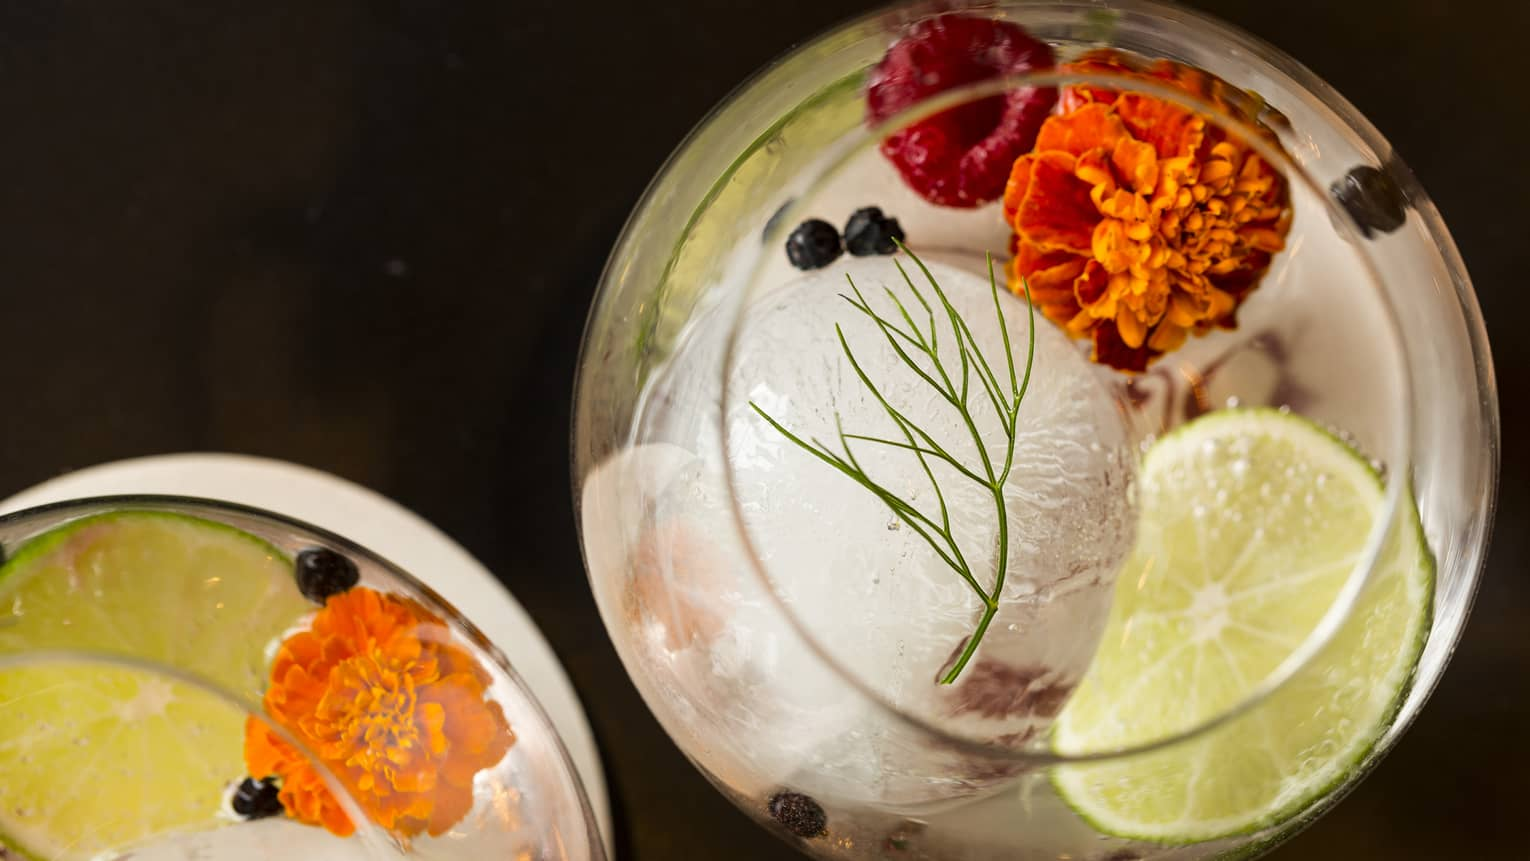 Aerial view of Capa Gin Tonic cocktails in glasses with ice, edible flowers, raspberries, lime